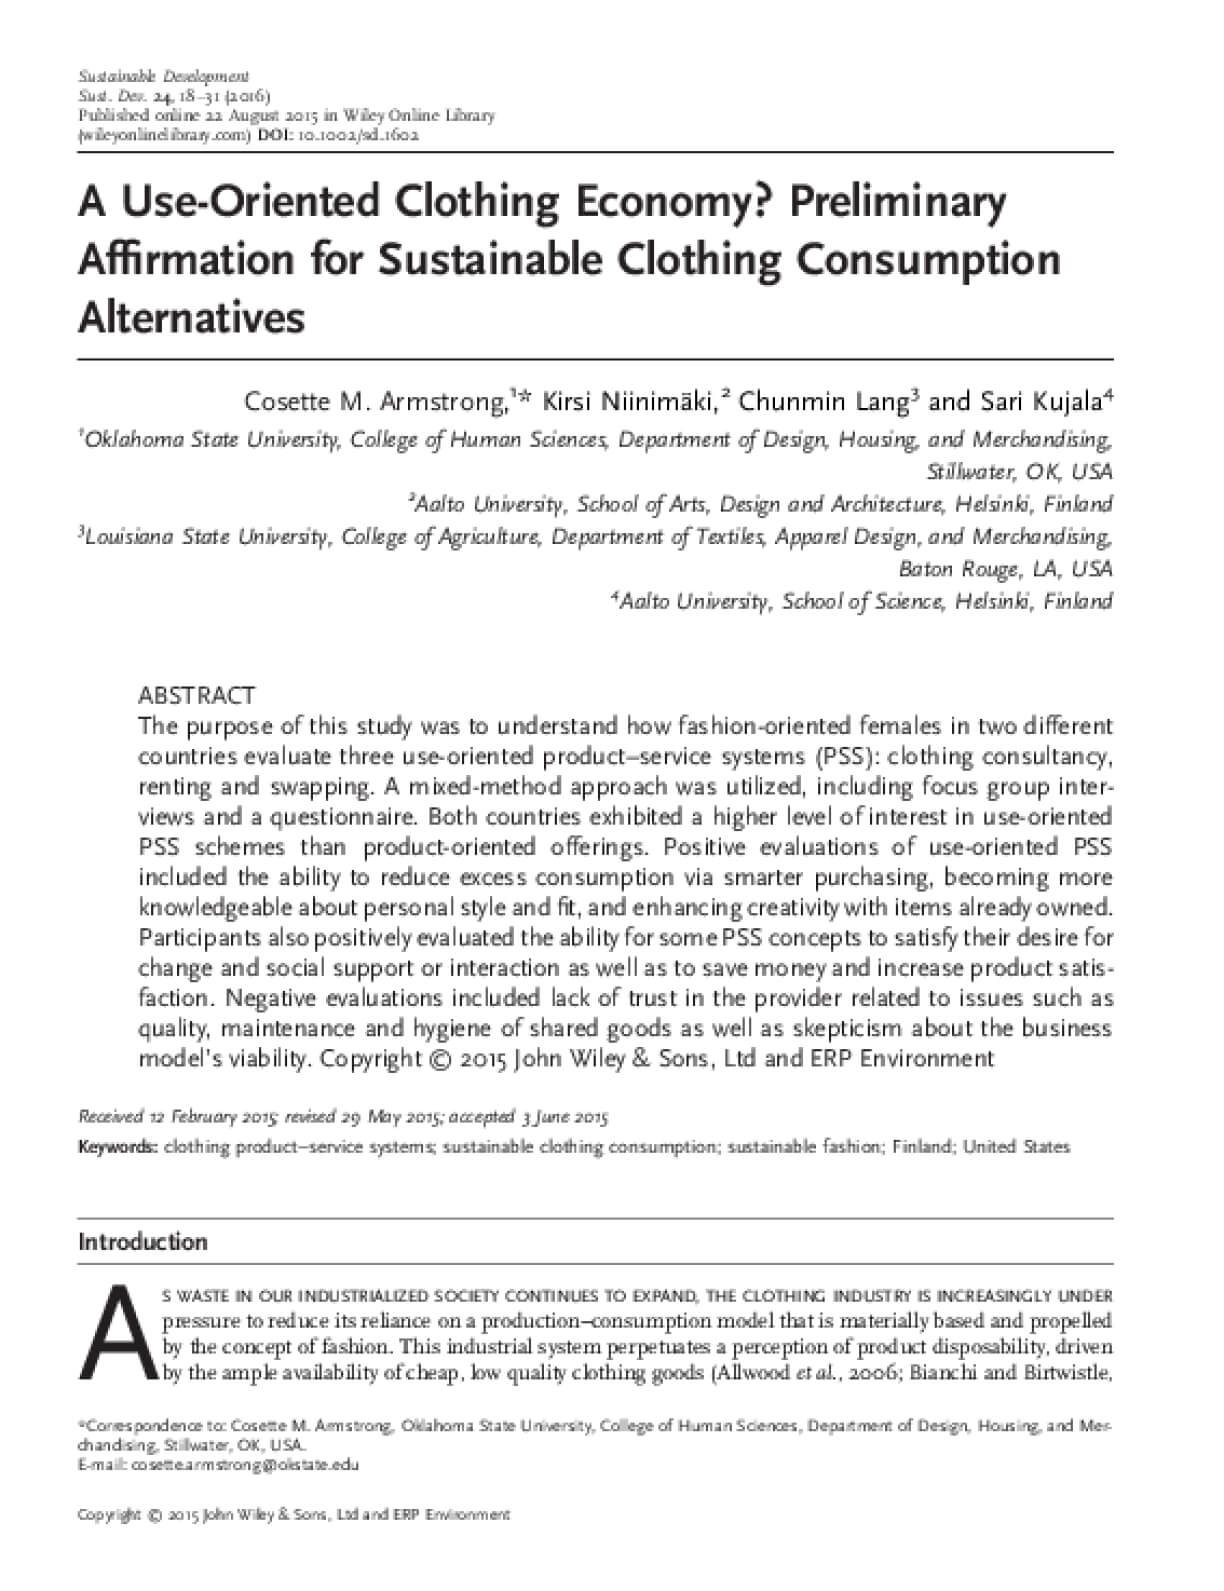 A Use-Oriented Clothing Economy? Preliminary Affirmation for Sustainable Clothing Consumption Alternatives